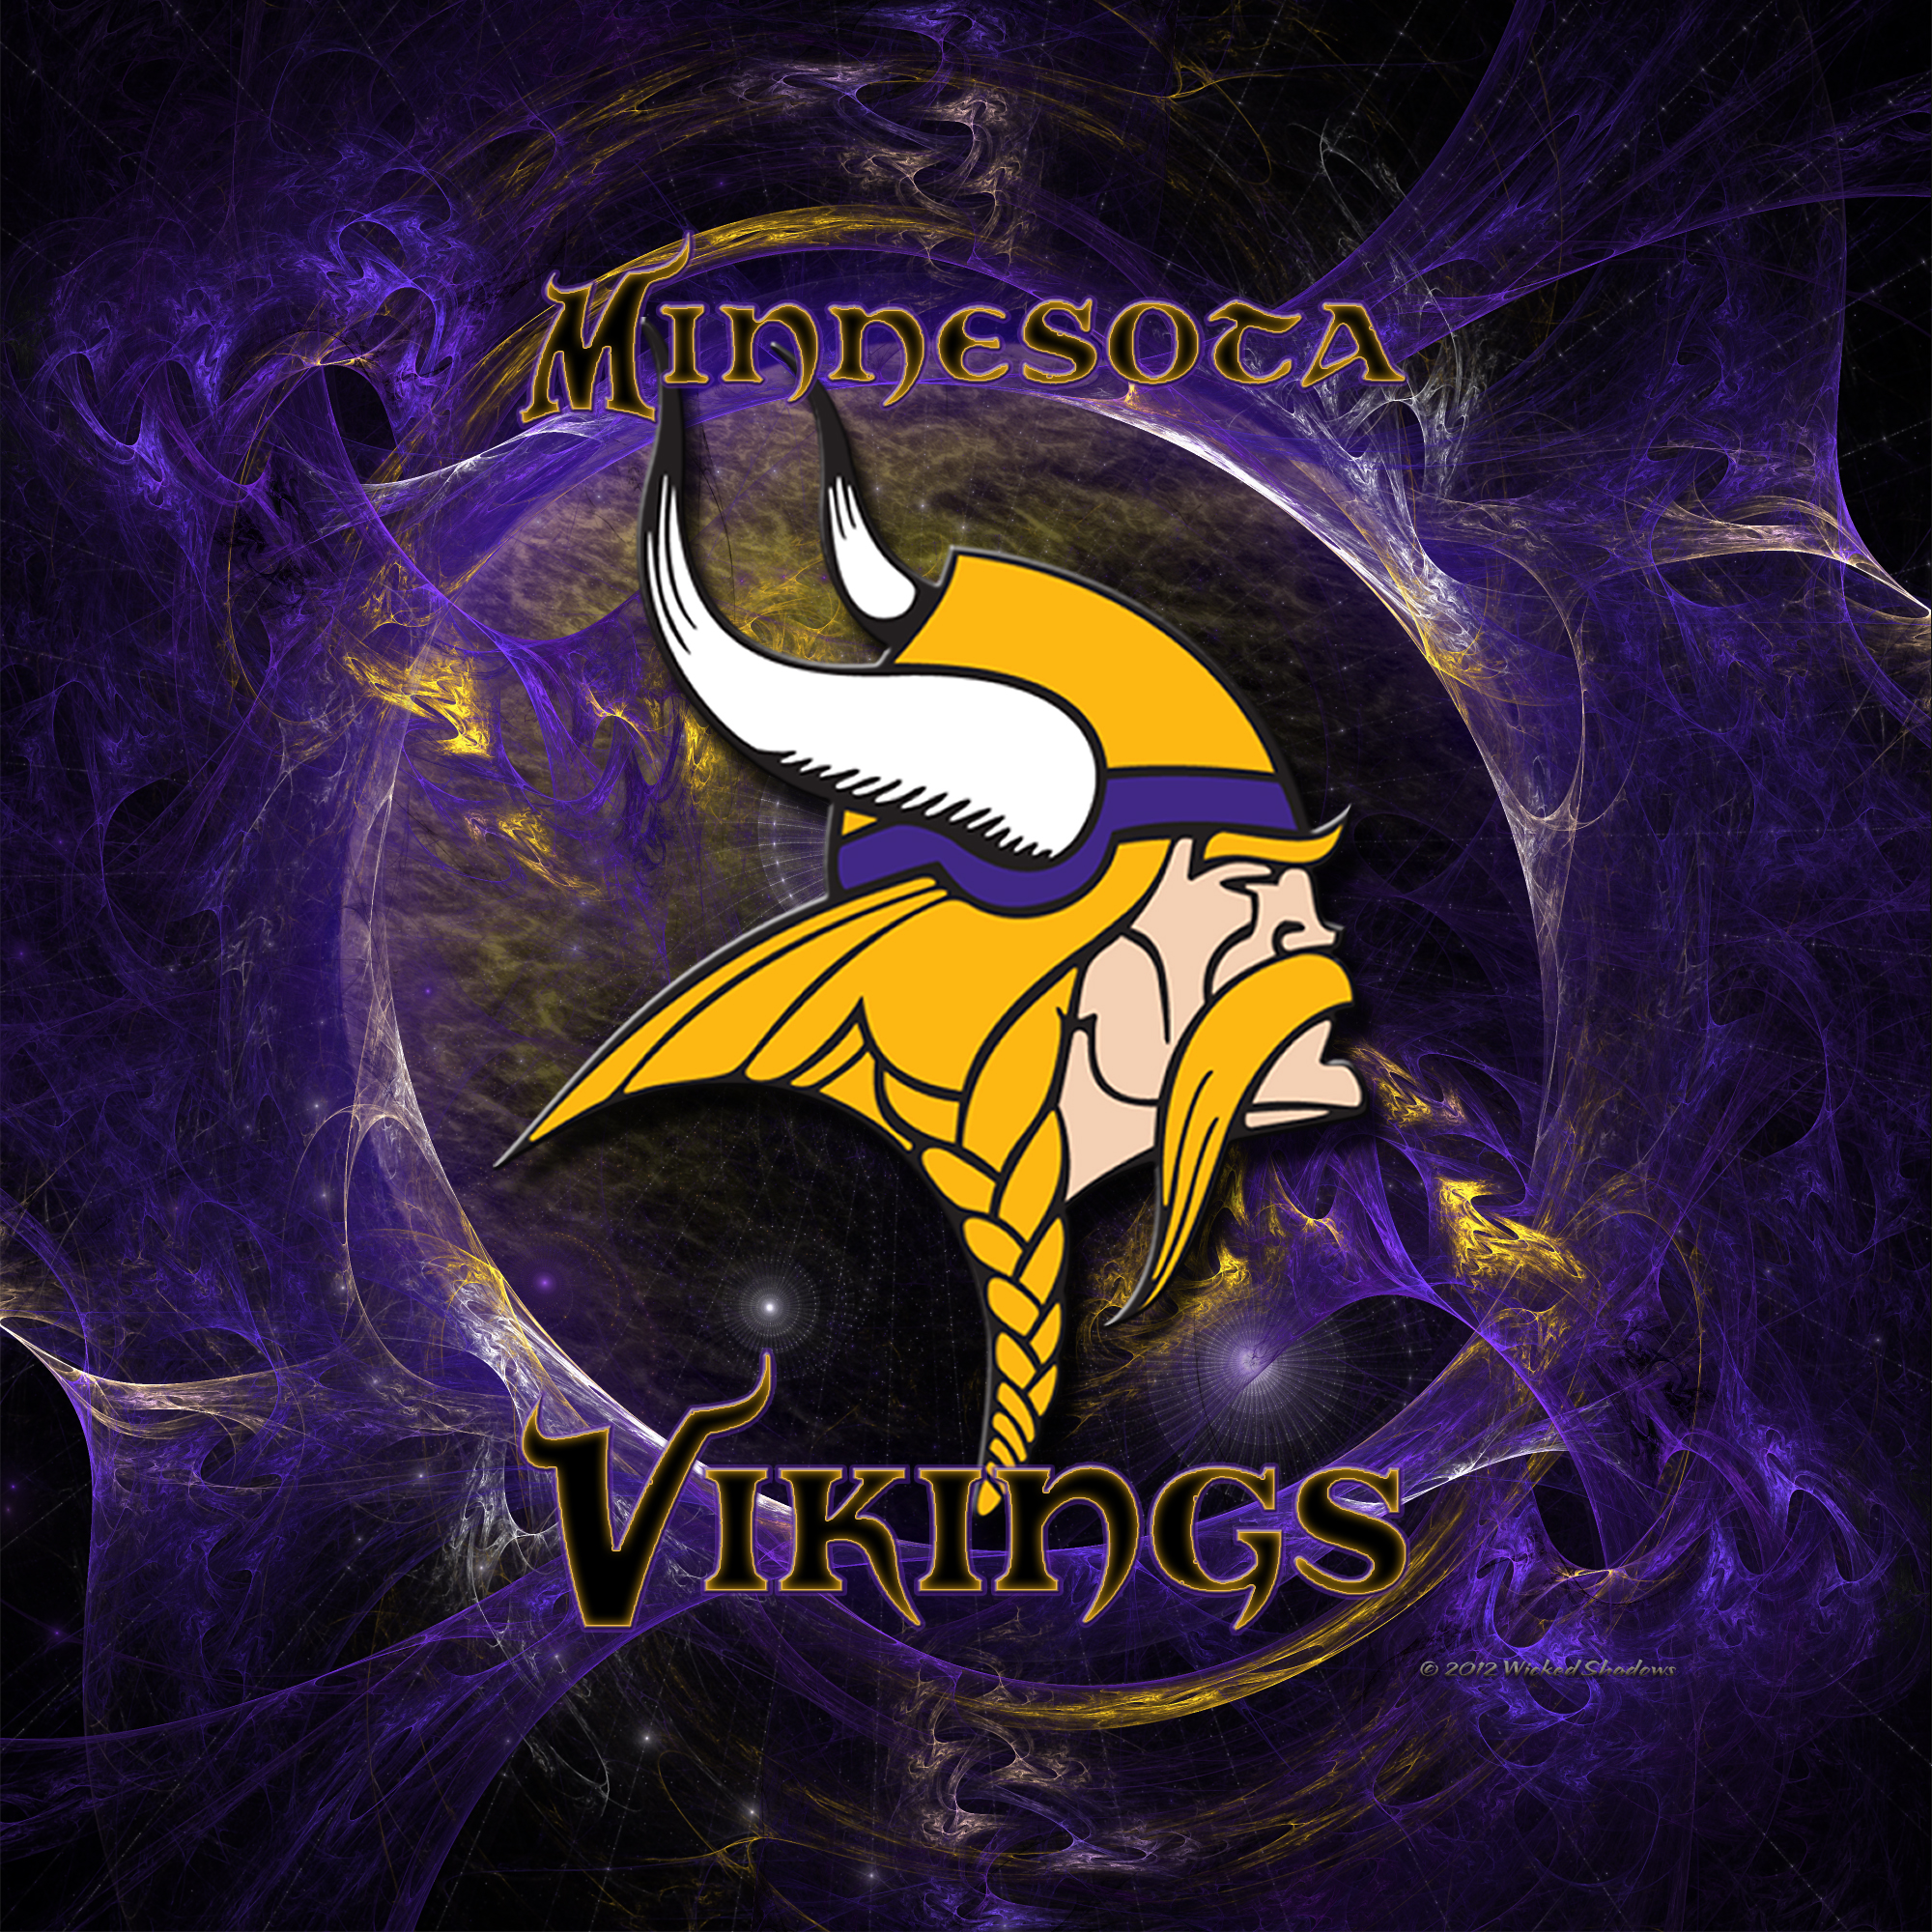 7 Hd Minisota Vikings 3d Logo Wallpapers By Wicked